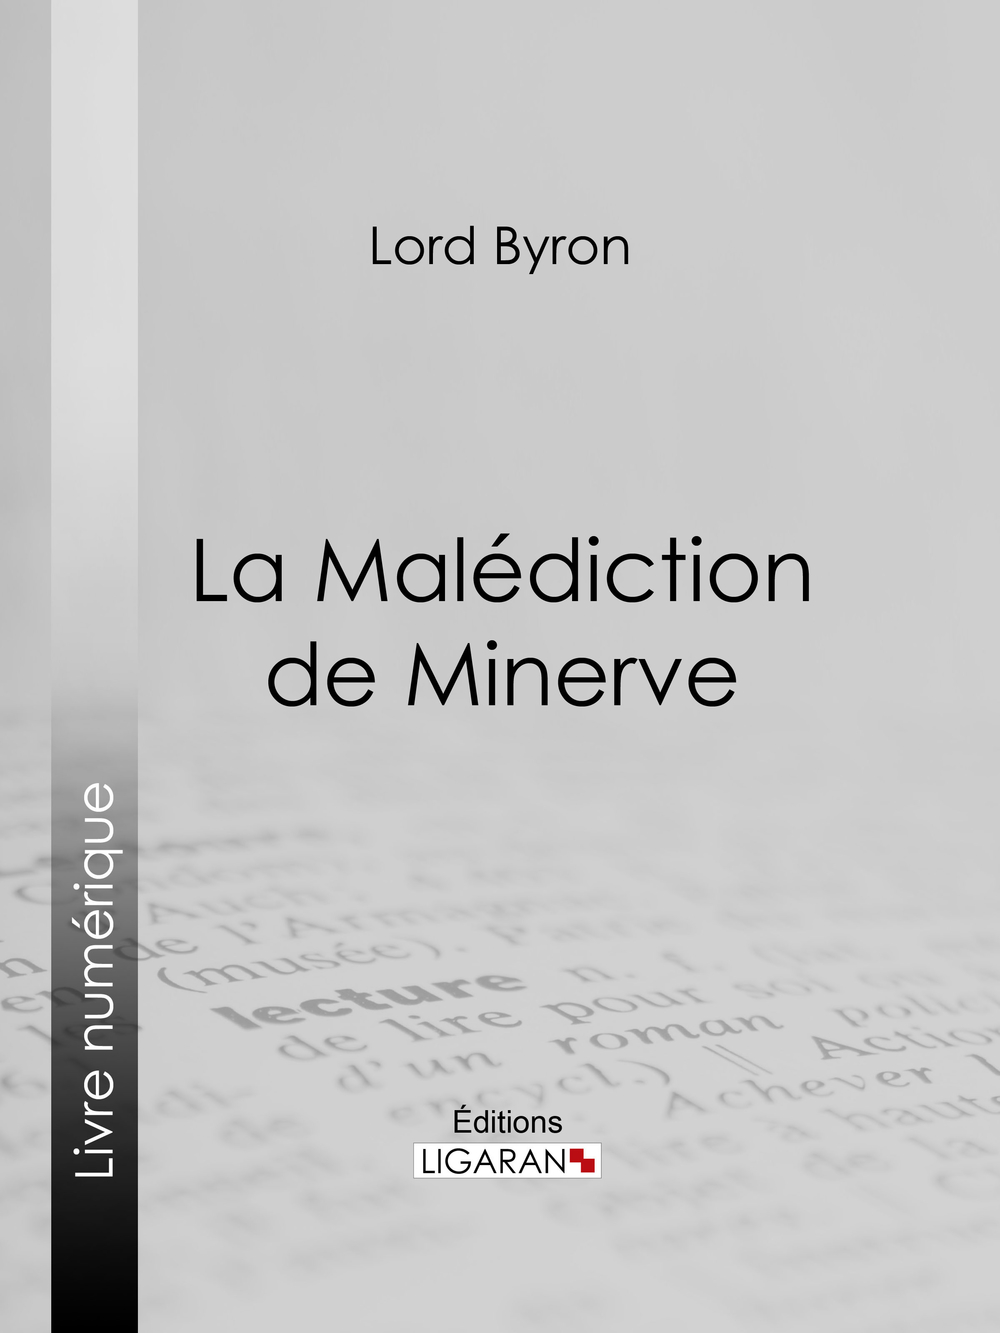 La Malédiction de Minerve